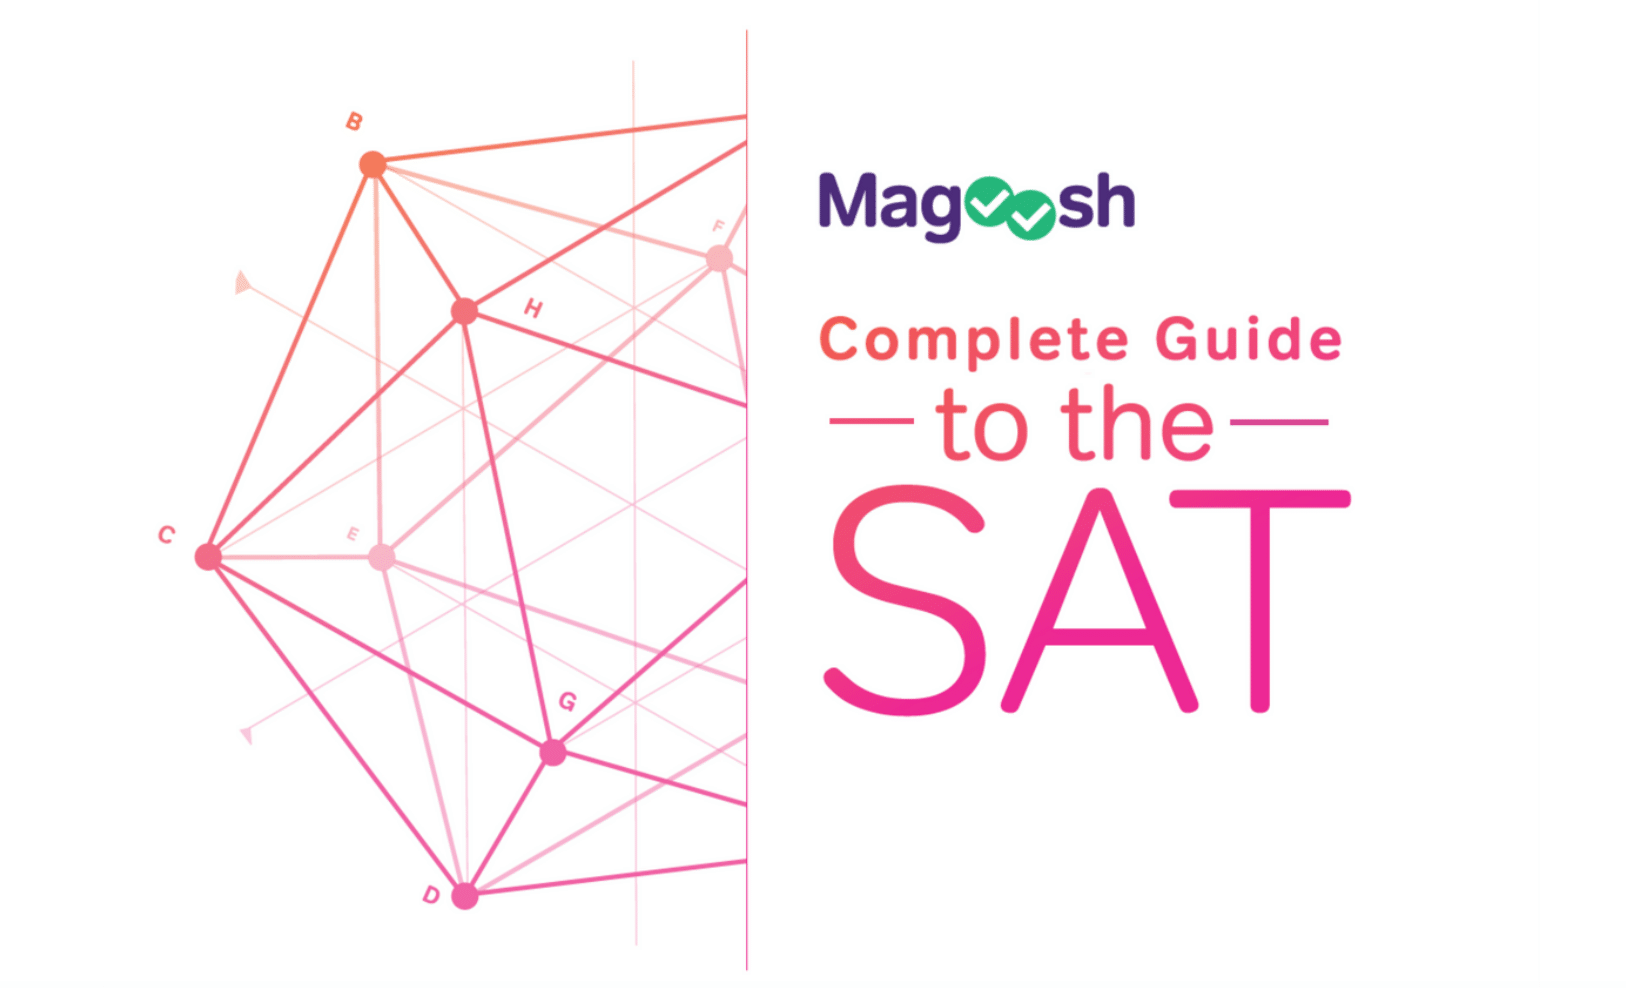 complete guide to the SAT - Magoosh